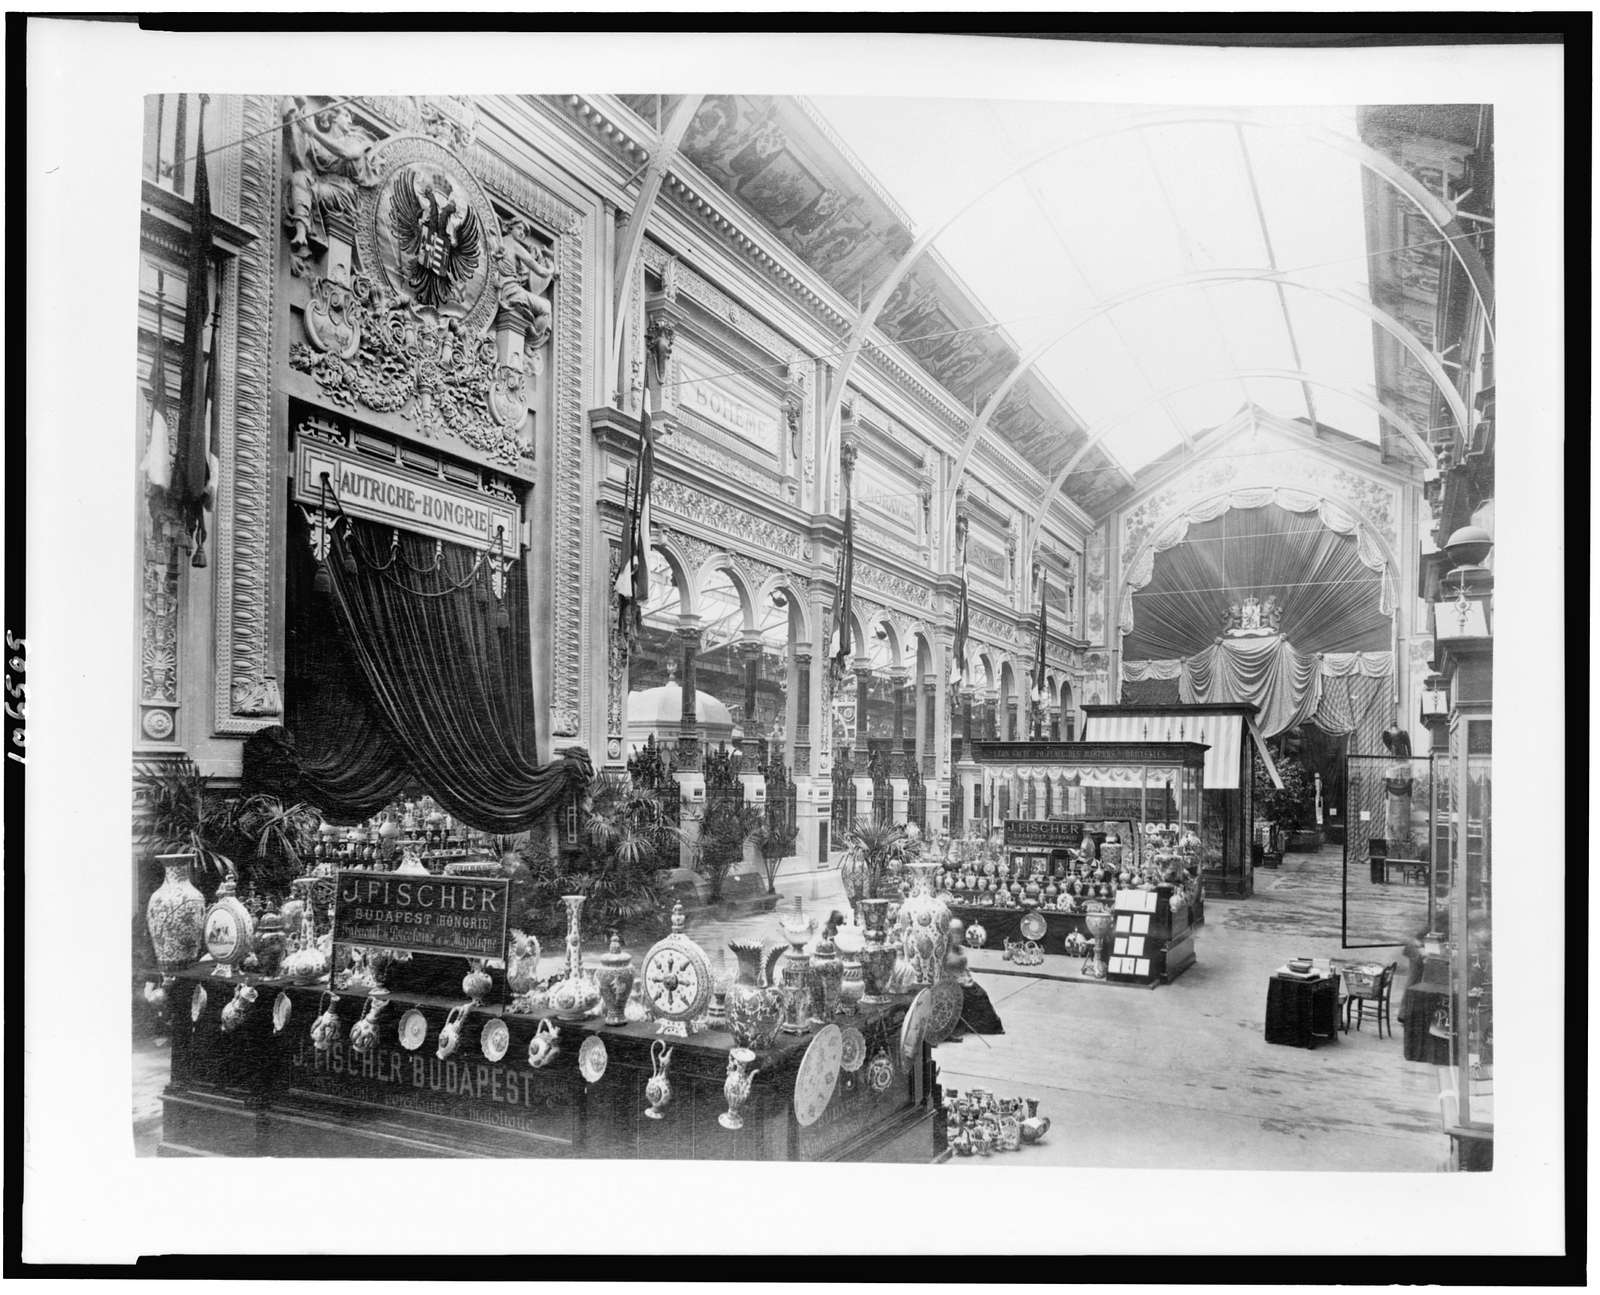 [Interior of the Palace of Diverse Industries, showing an exhibit of porcelain and majolica by J. Fischer, Budapest, Hungary, Paris Exposition, 1889]